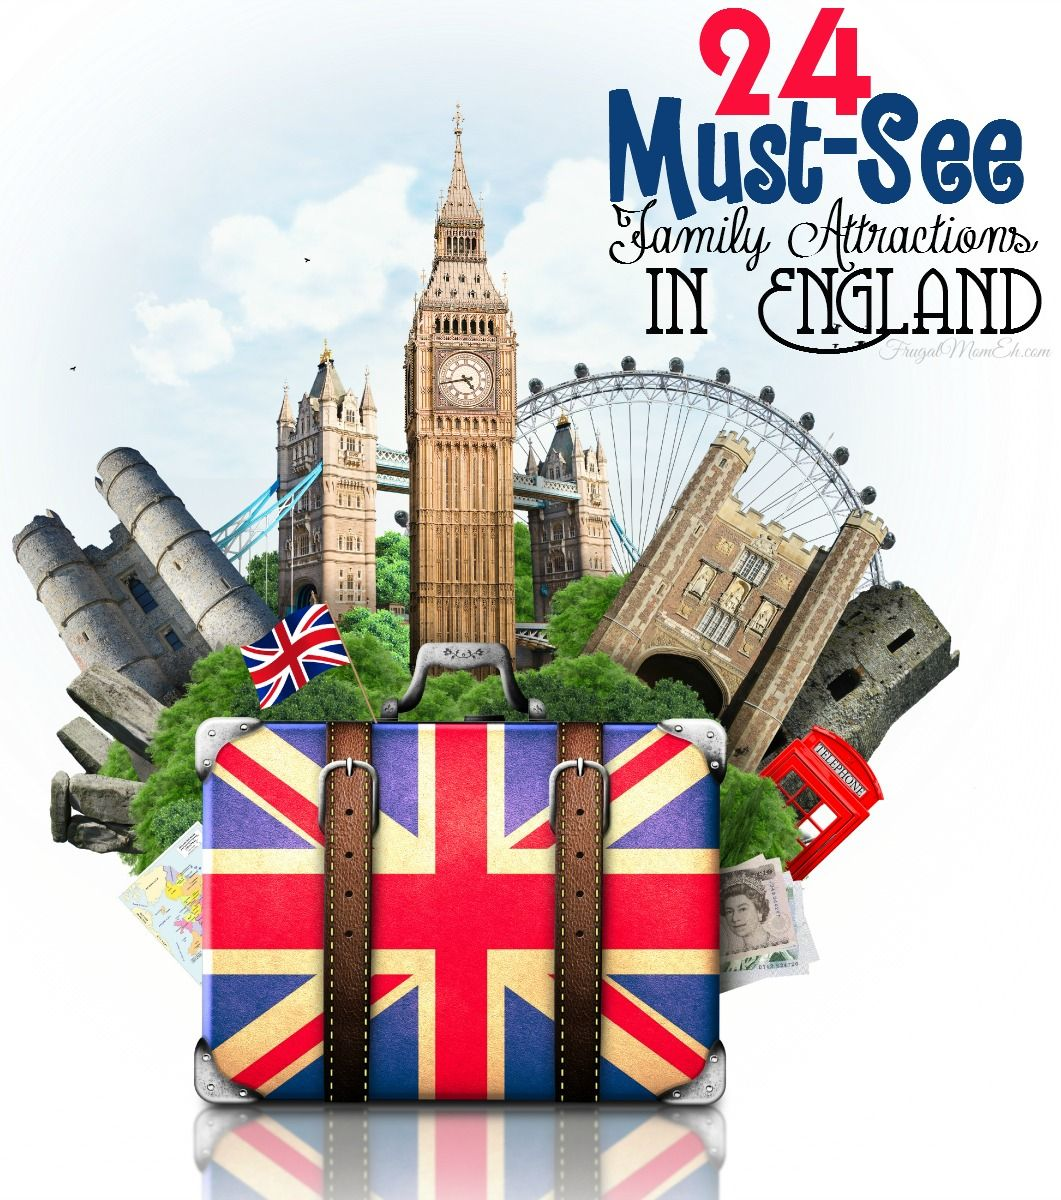 24 Must-See Family Attractions in England - Frugal Mom Eh!